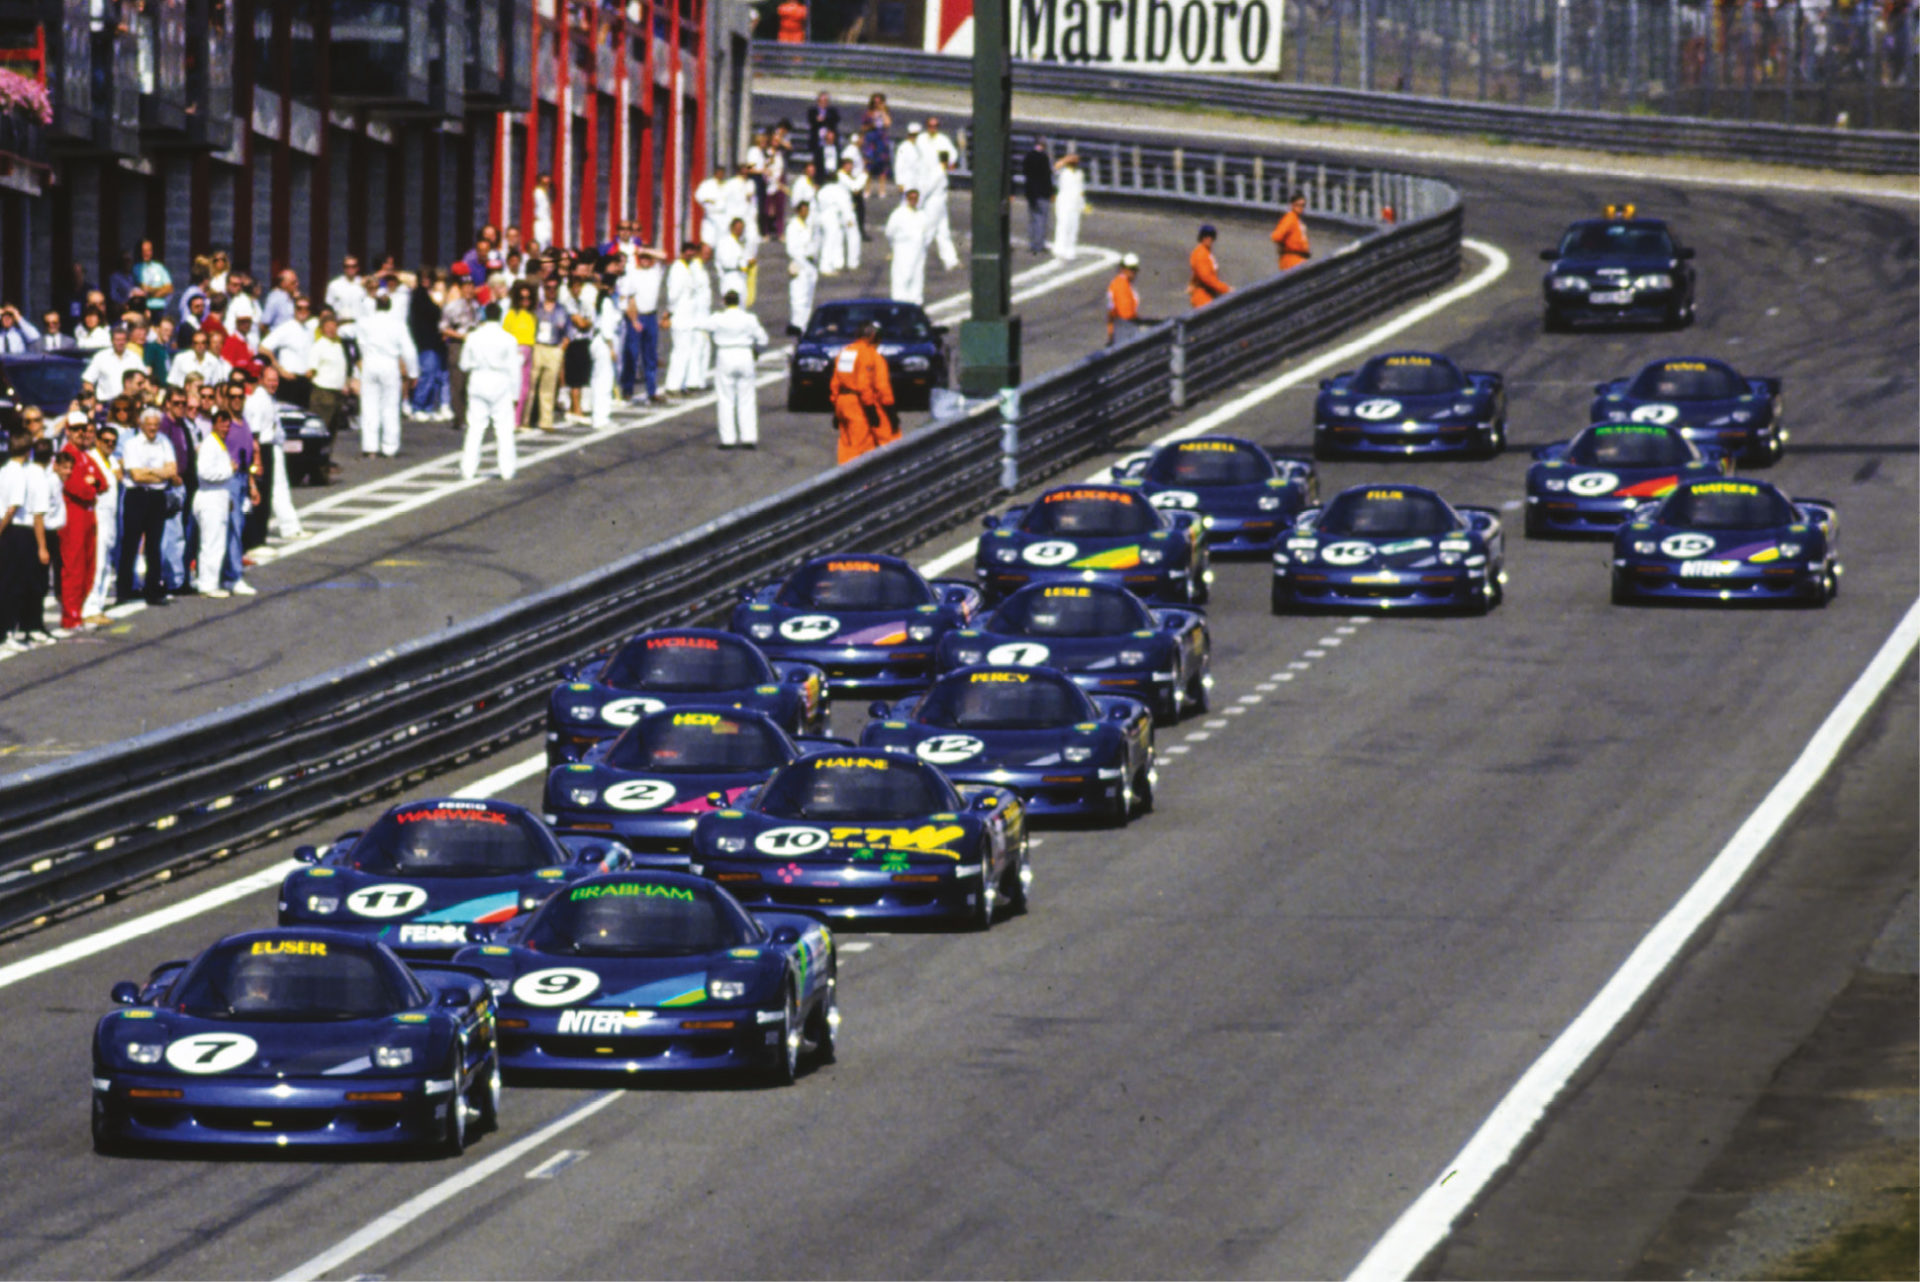 The Jaguar Intercontinental Challenge was capped by a $1m race on the undercard of the Belgian GP at Spa. Euser led early on, but Hahne won